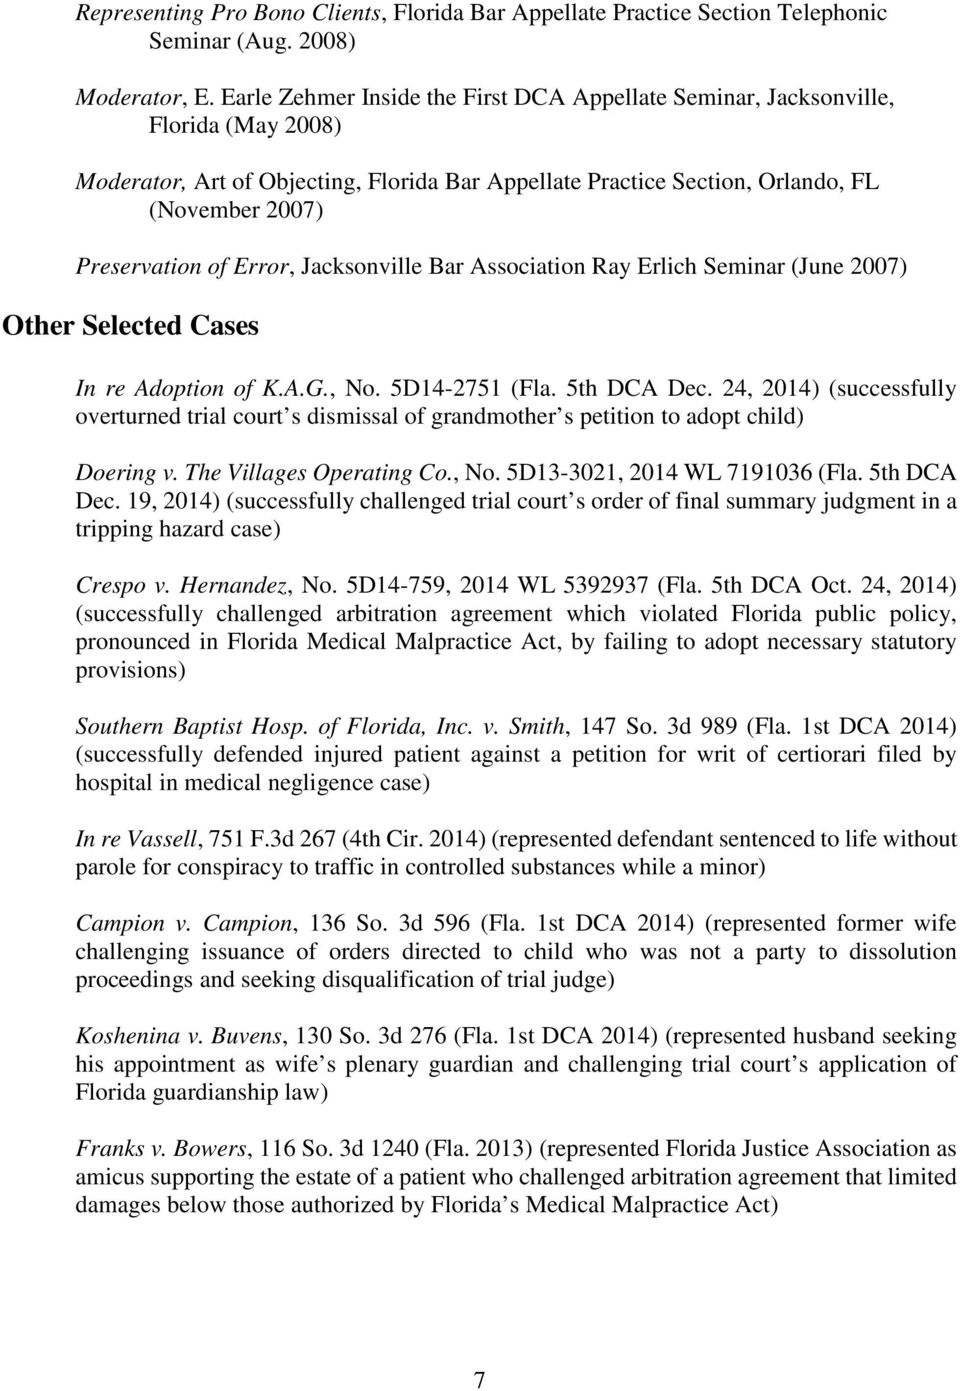 Error, Jacksonville Bar Association Ray Erlich Seminar (June 2007) Other Selected Cases In re Adoption of K.A.G., No. 5D14-2751 (Fla. 5th DCA Dec.